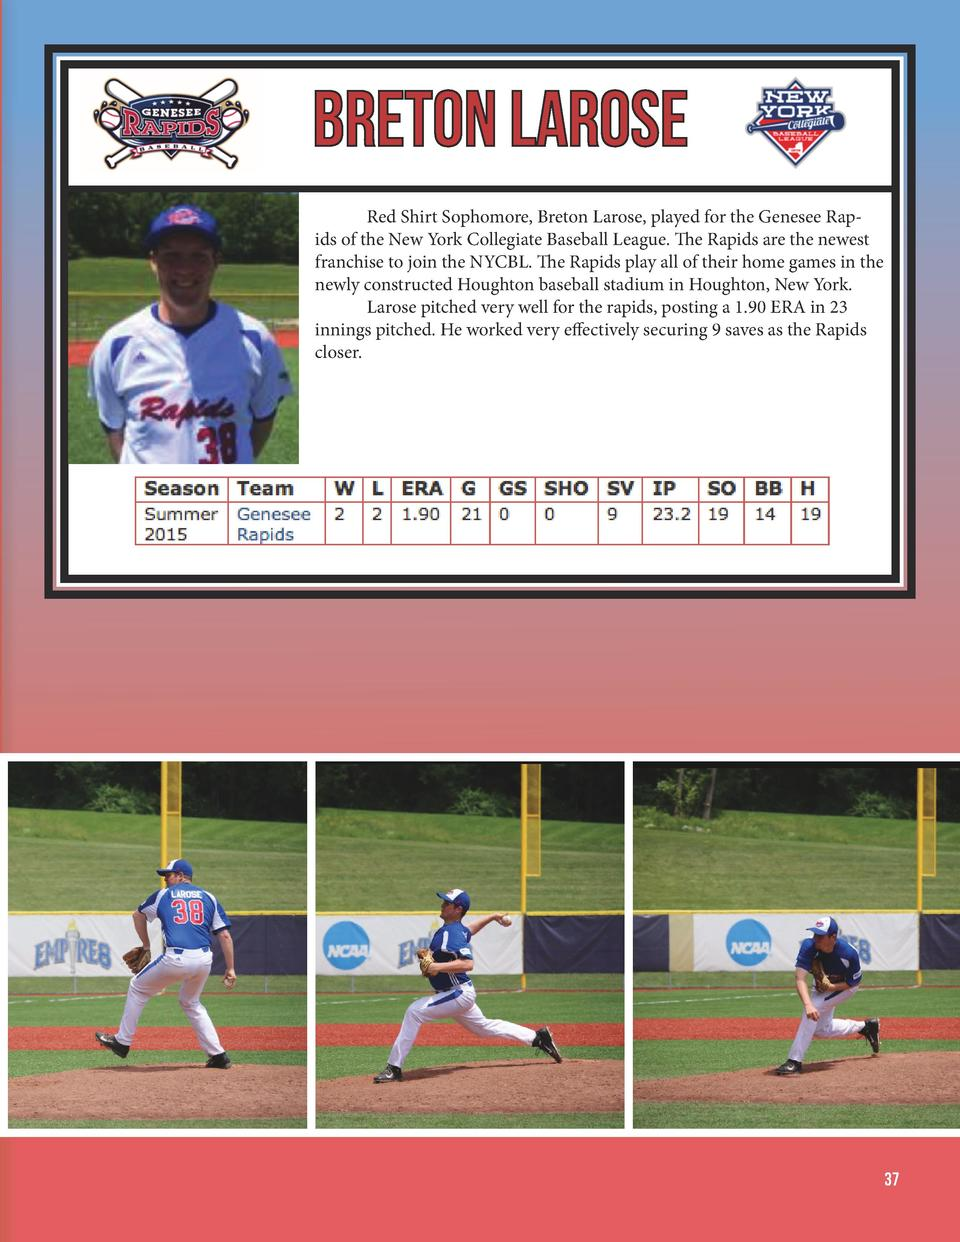 Breton LaRose       Red Shirt Sophomore, Breton Larose, played for the Genesee Rapids of the New York Collegiate Baseball ...